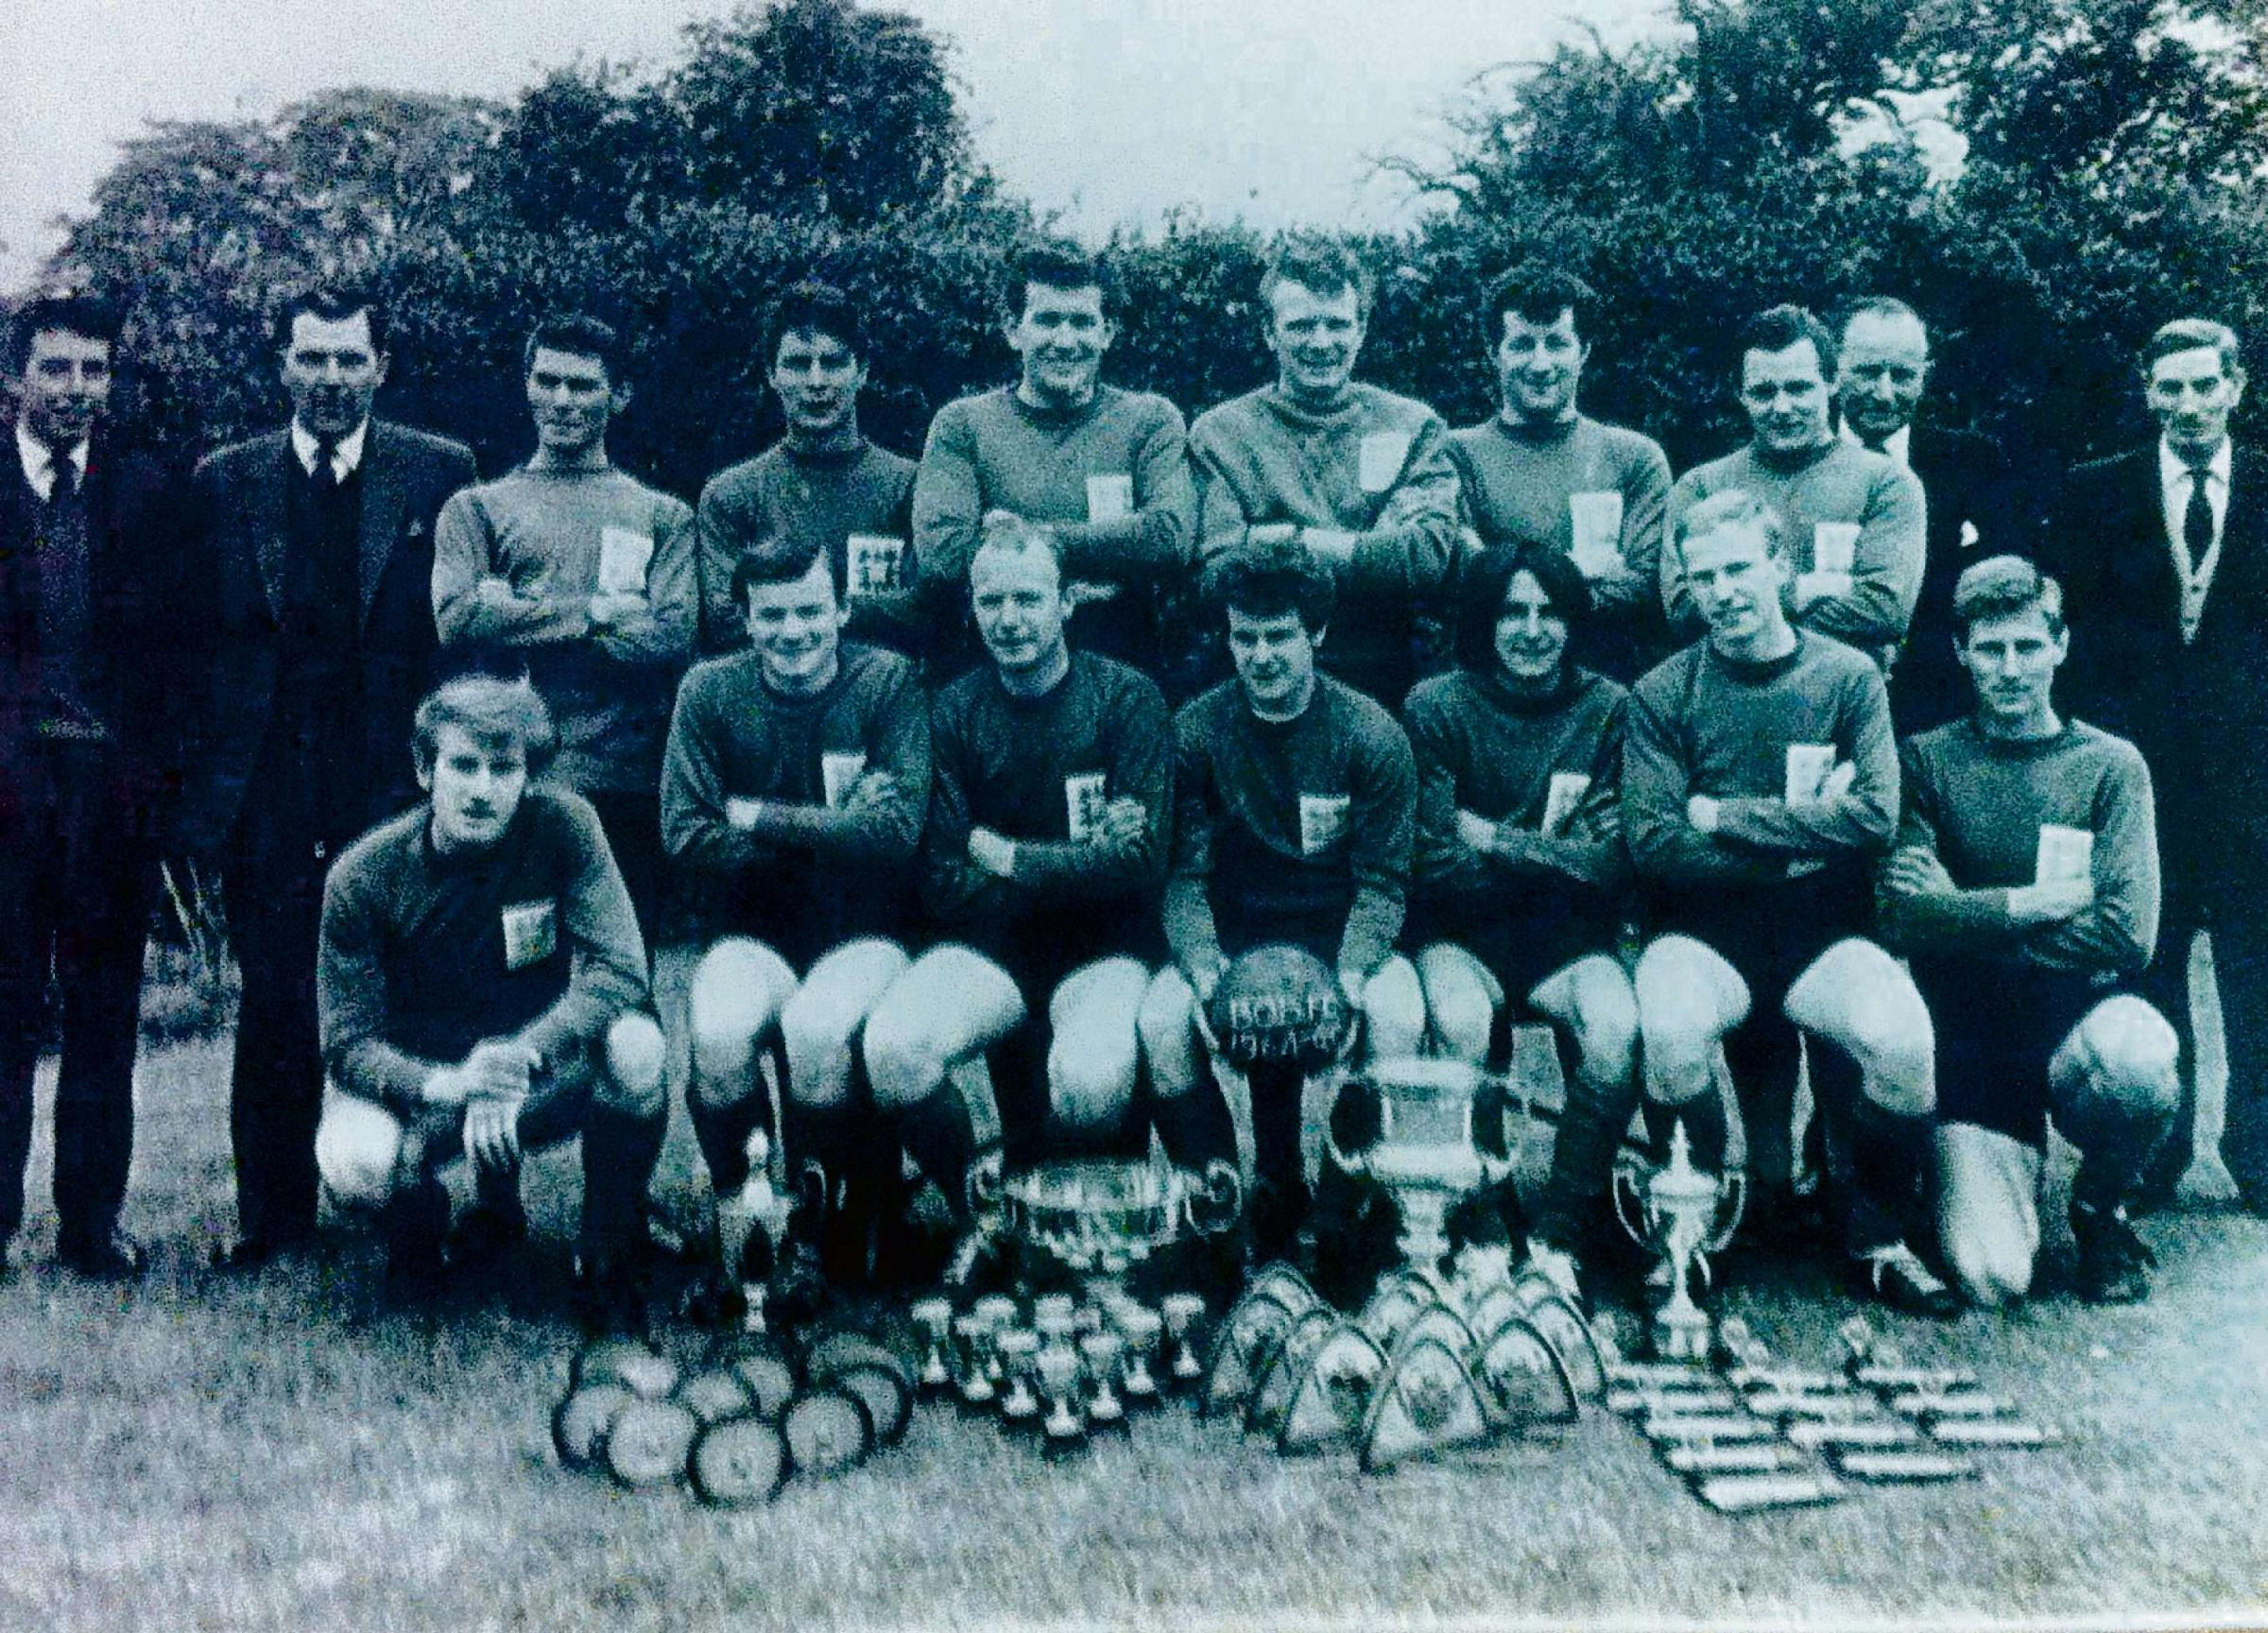 The all-conquering Bretforton Old Boys squad of 1964. Mike Allchurch ( committee),Philip Jelfs (treasurer),Ray Heywood,Tony Smith, Sam Raphael,Dave Heywood, Alan Walding, Roger Brewer, Dave Jackson, Maurice Allchurch, Derek Archer, Mick Wattie, Tony Weyla